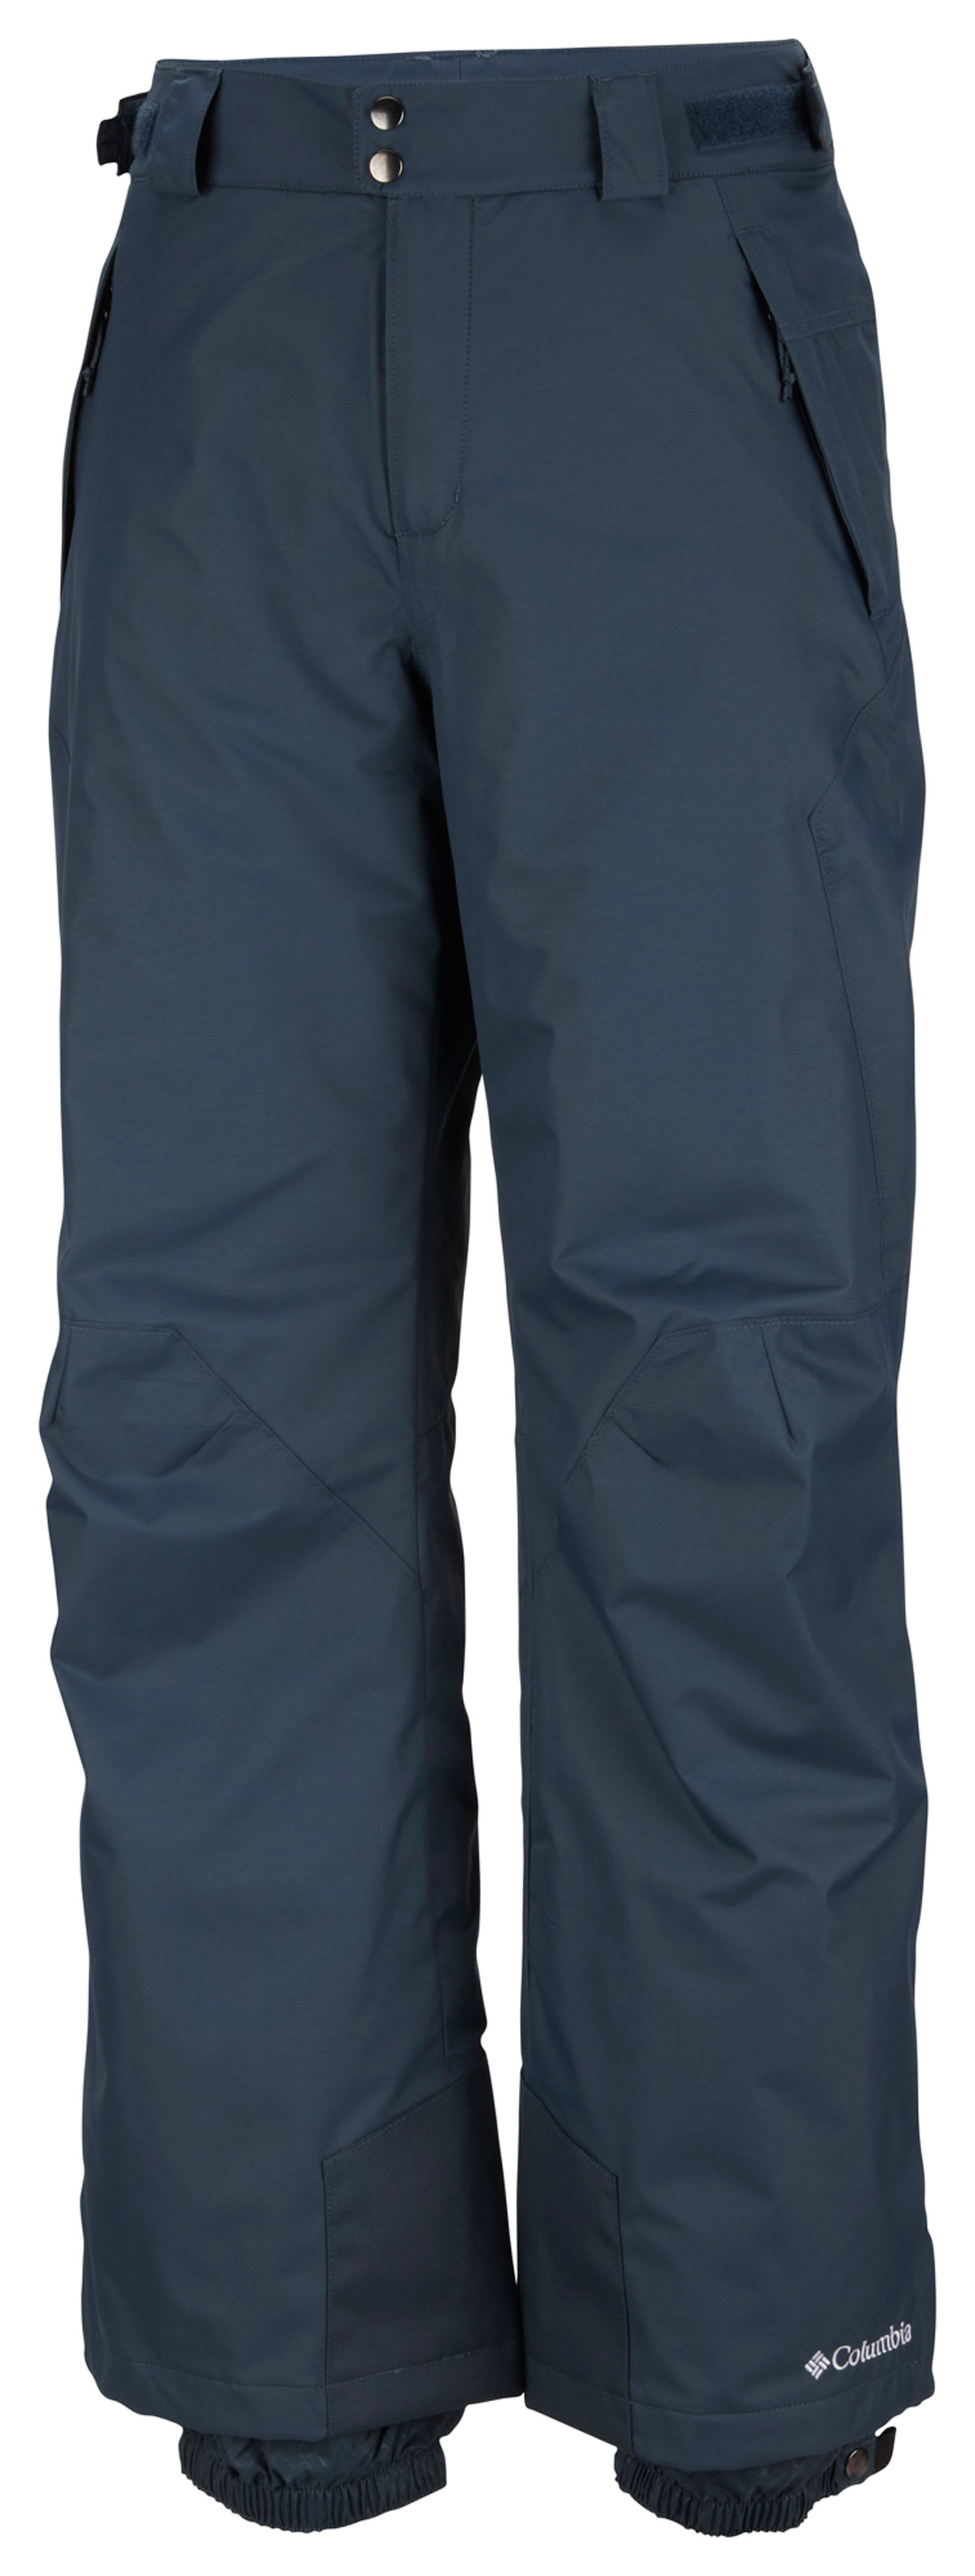 Shop for Columbia Bugaboo II Ski Pants Mystery - Men's